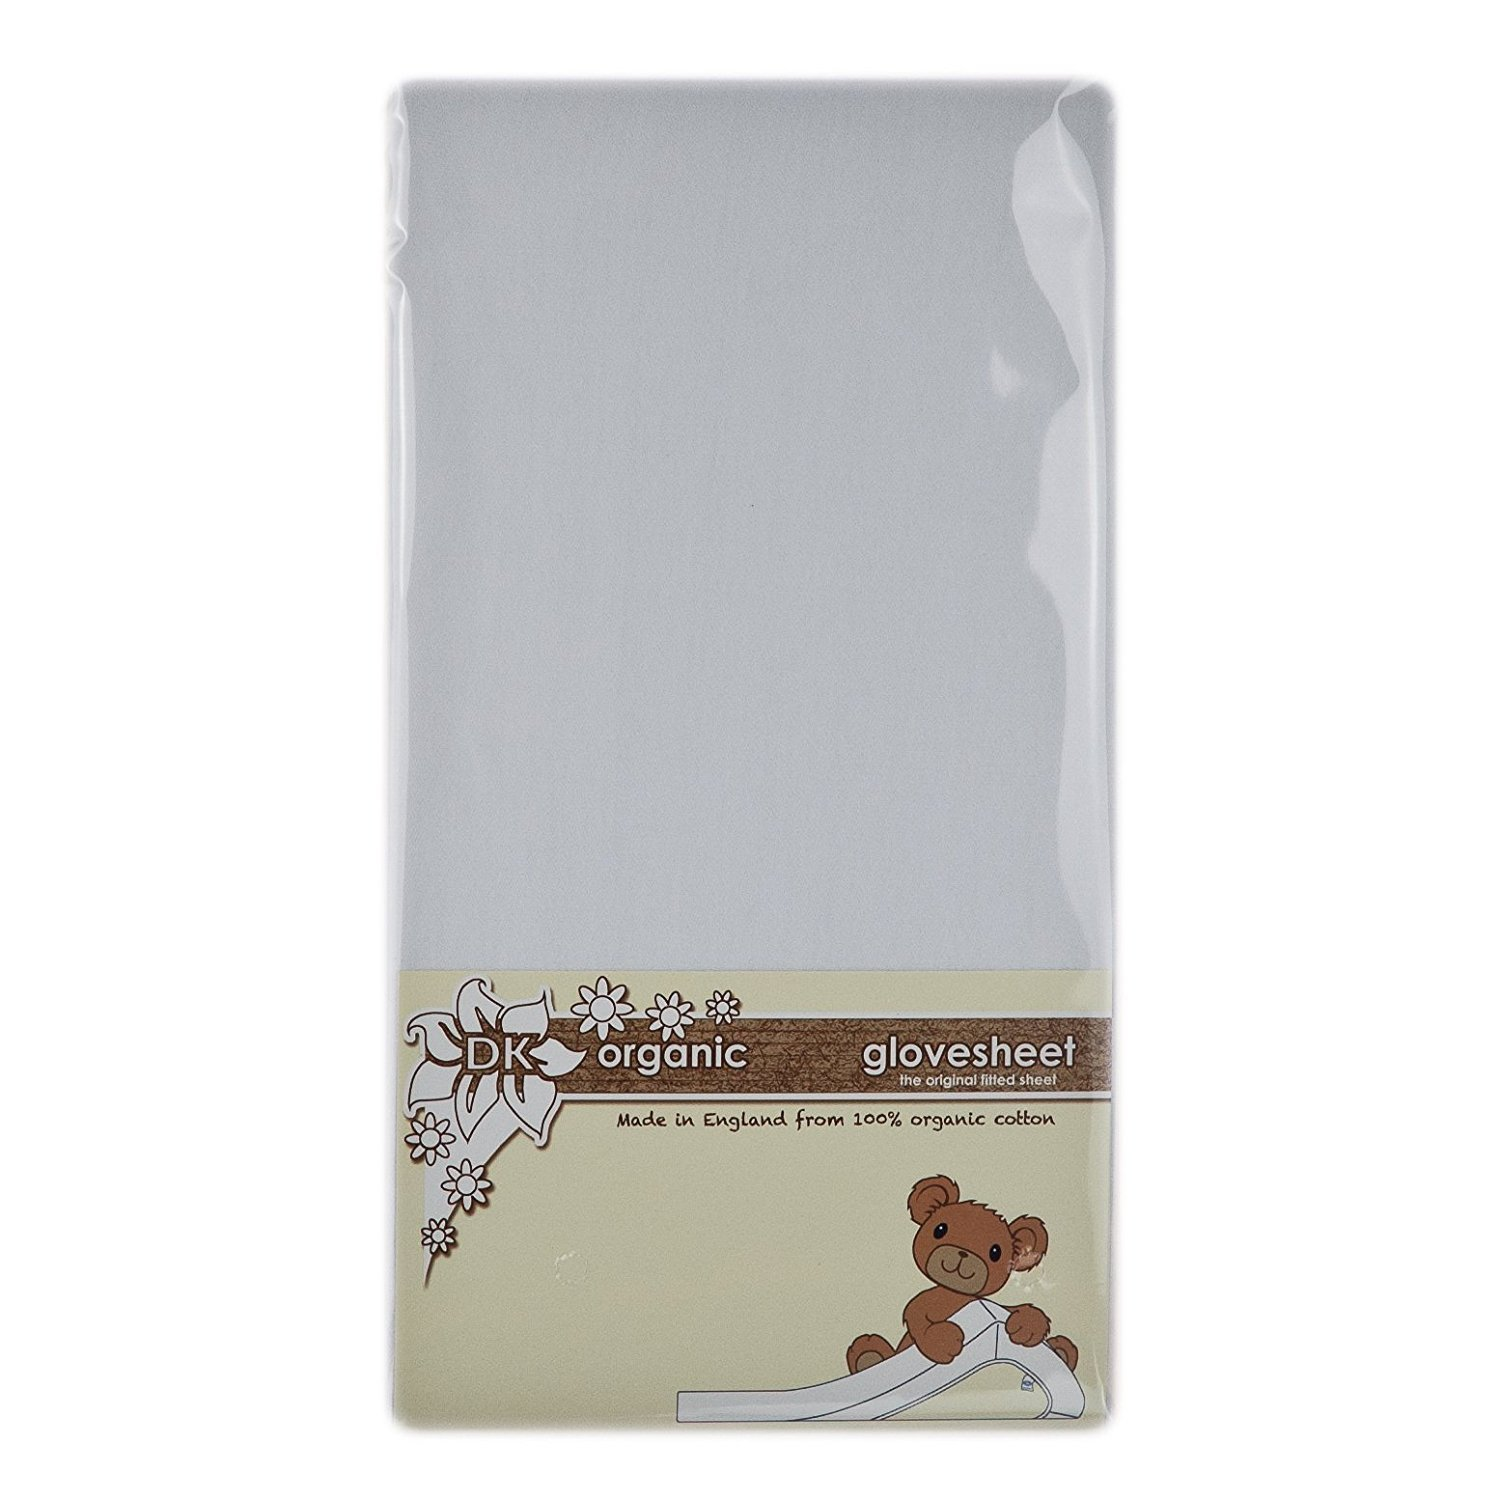 DK Glovesheets 100/% Organic Cotton Fitted Small Travel Cot Sheet White, 95x65cm